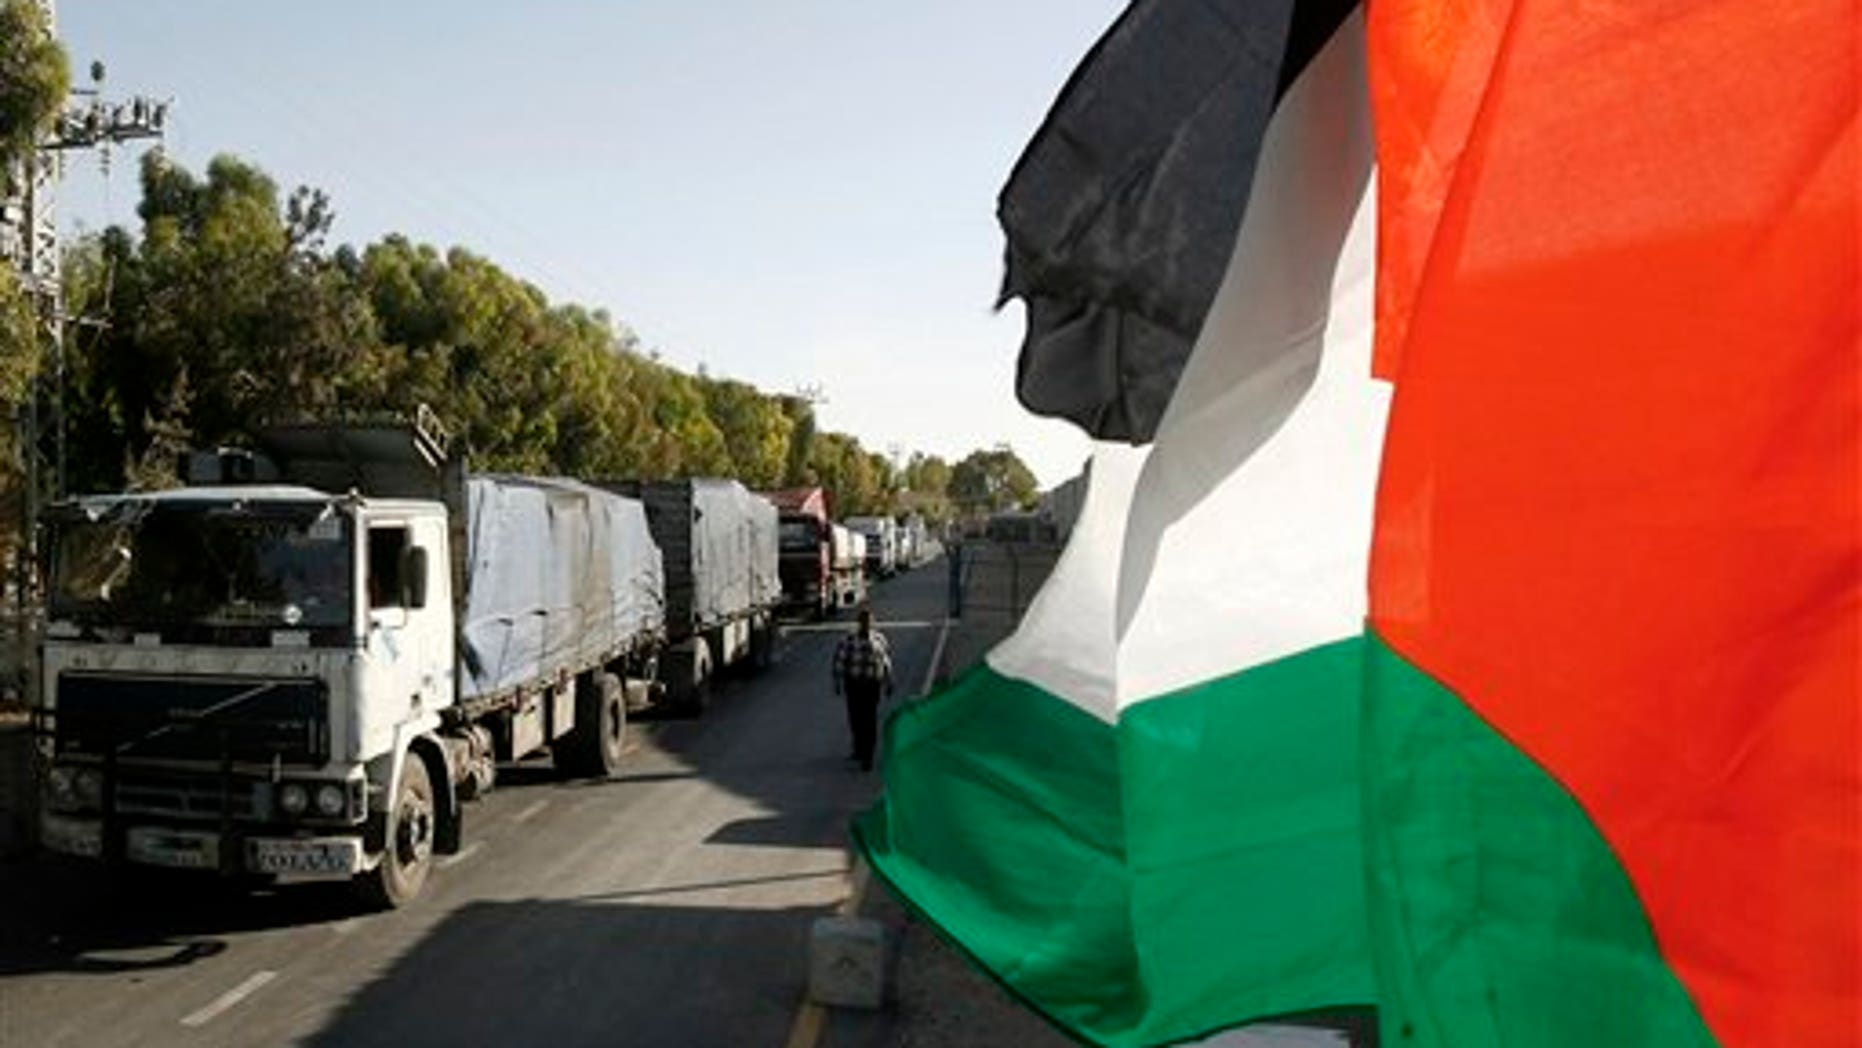 June 10: Palestinian trucks loaded with fruits and other goods arrive in Rafah from Israel through the Kerem Shalom border crossing between Israel and the Gaza Strip.